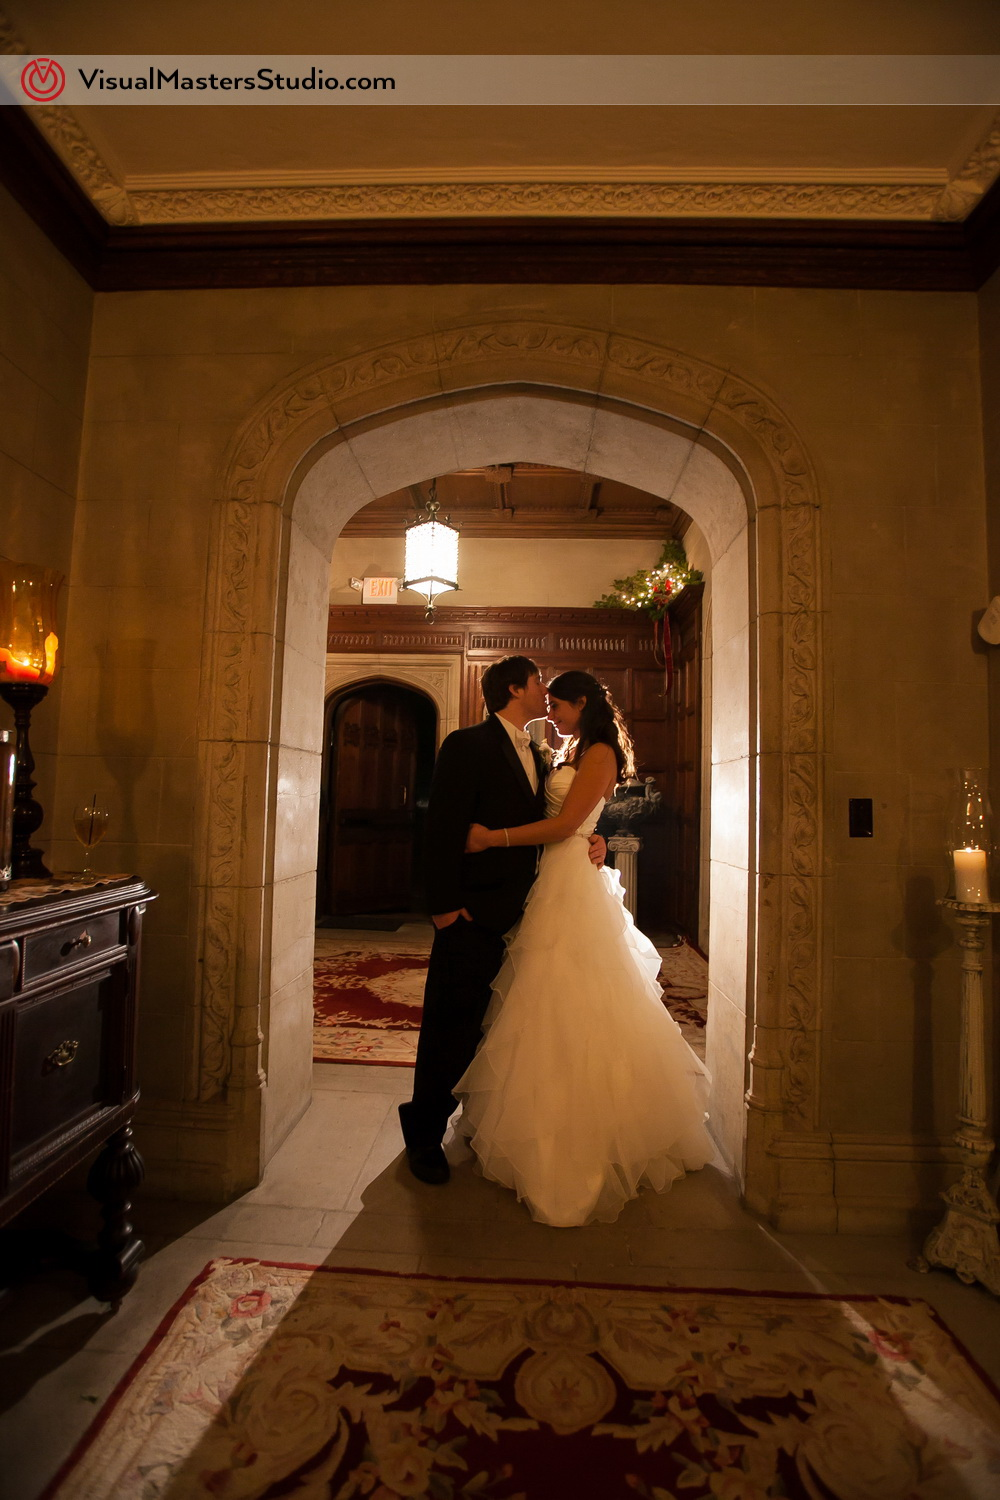 Bride and Groom Posing at The Castle at Skylands Manor by Visual Masters